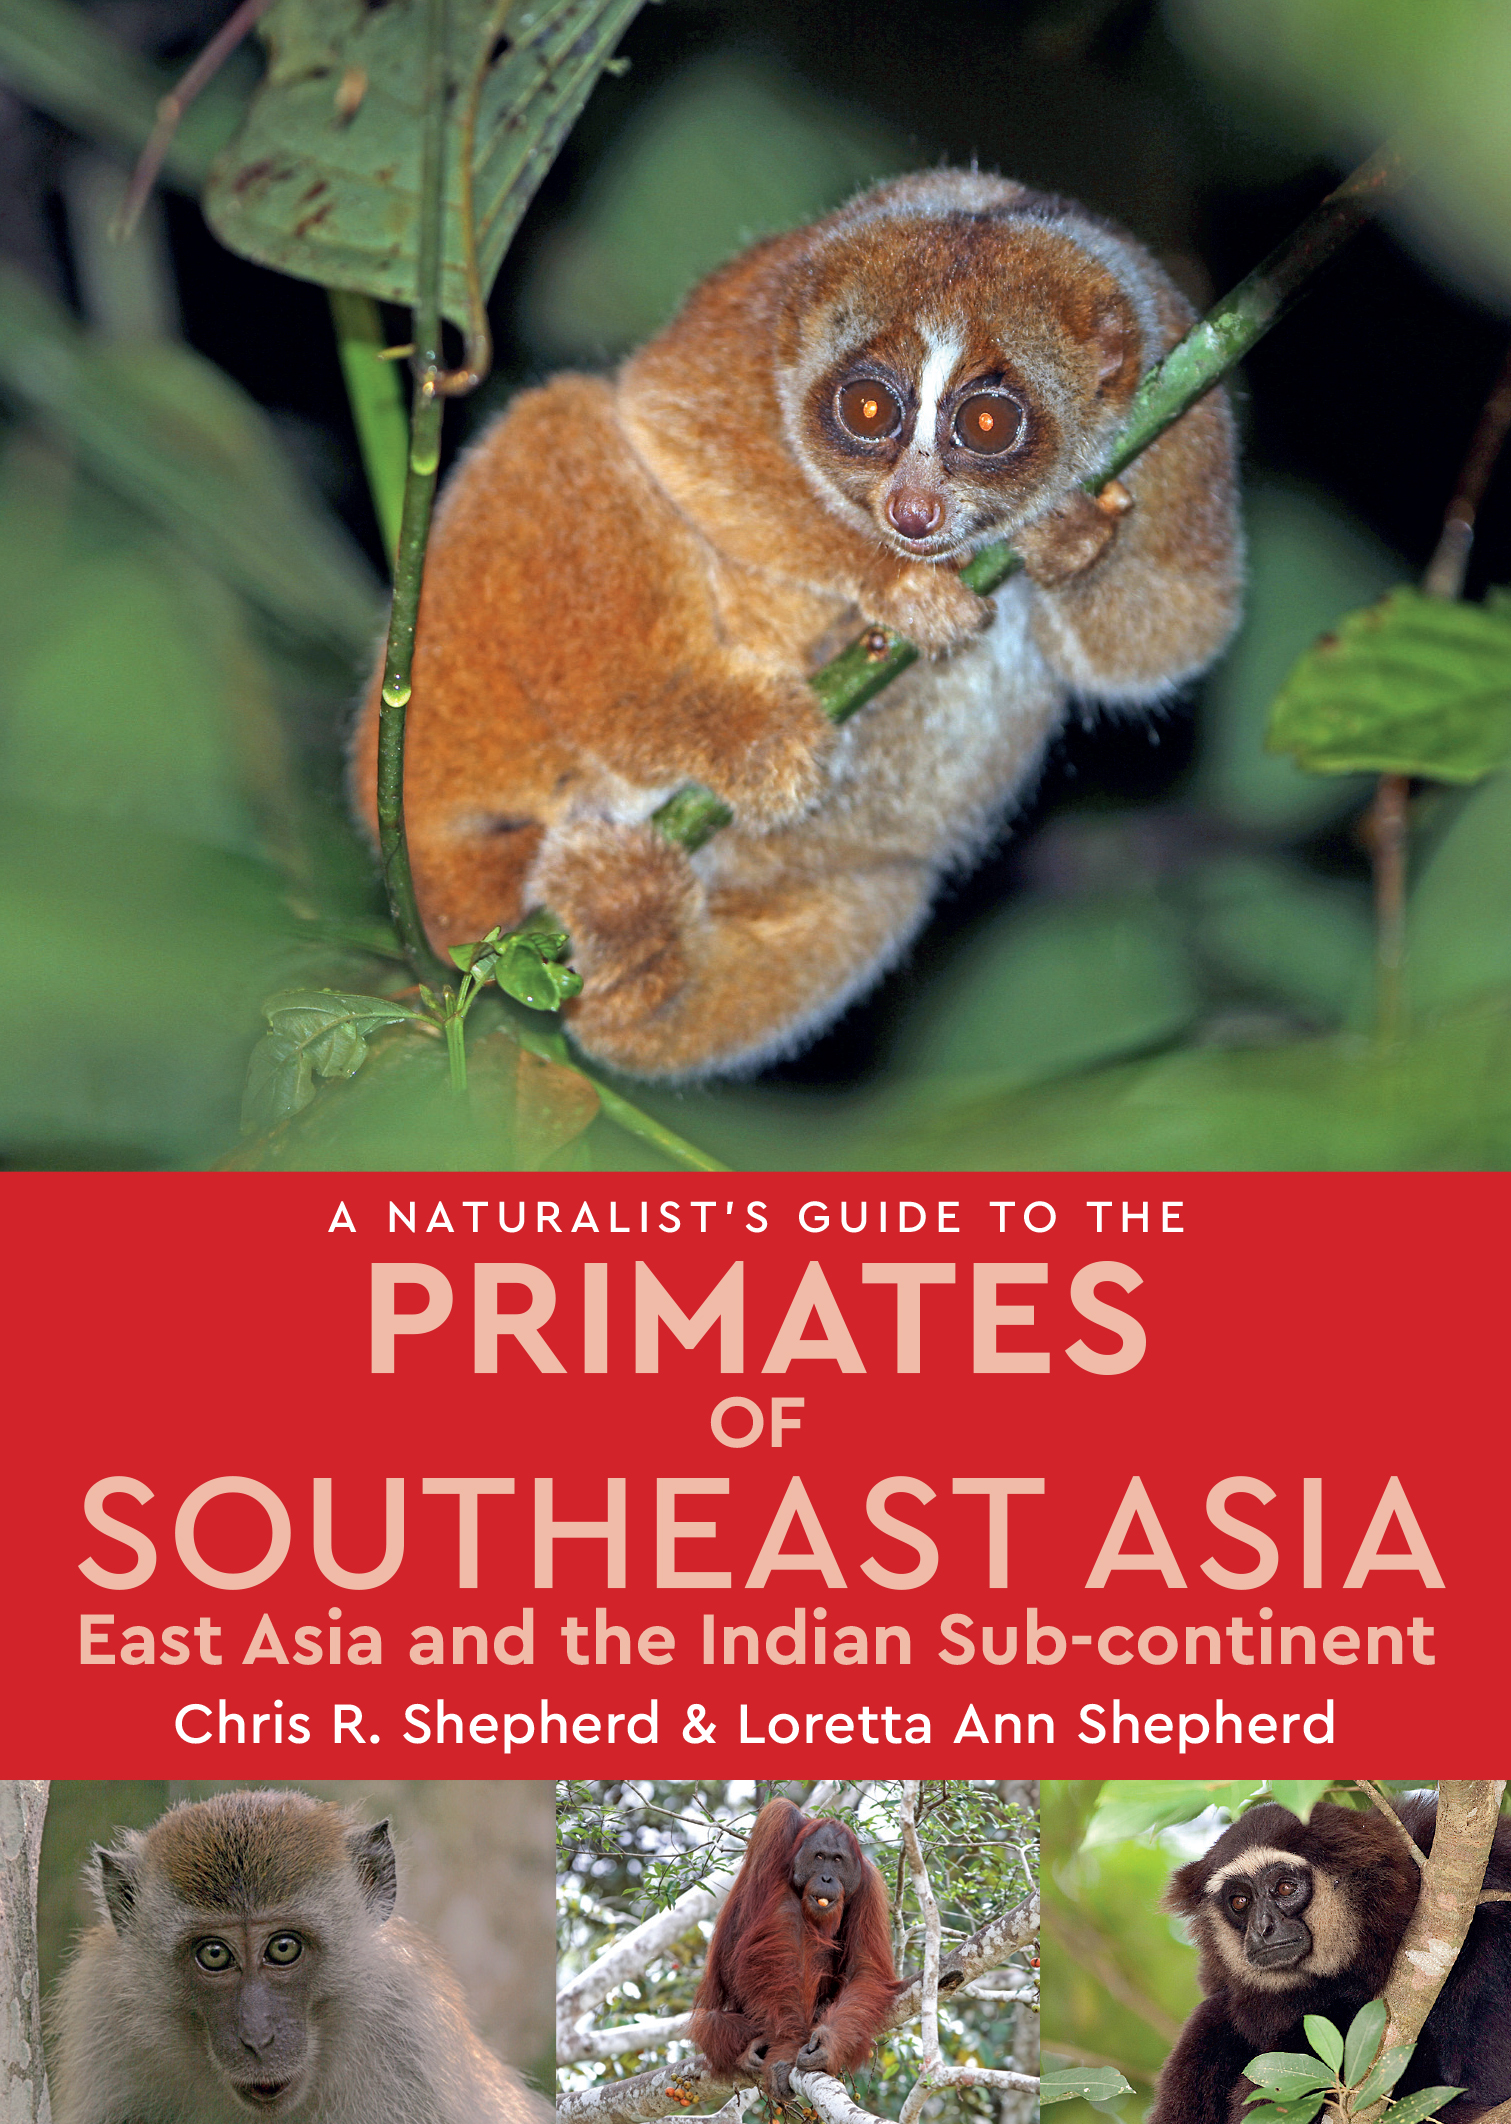 A Naturalist's Guide to the Primates of Southeast Asia